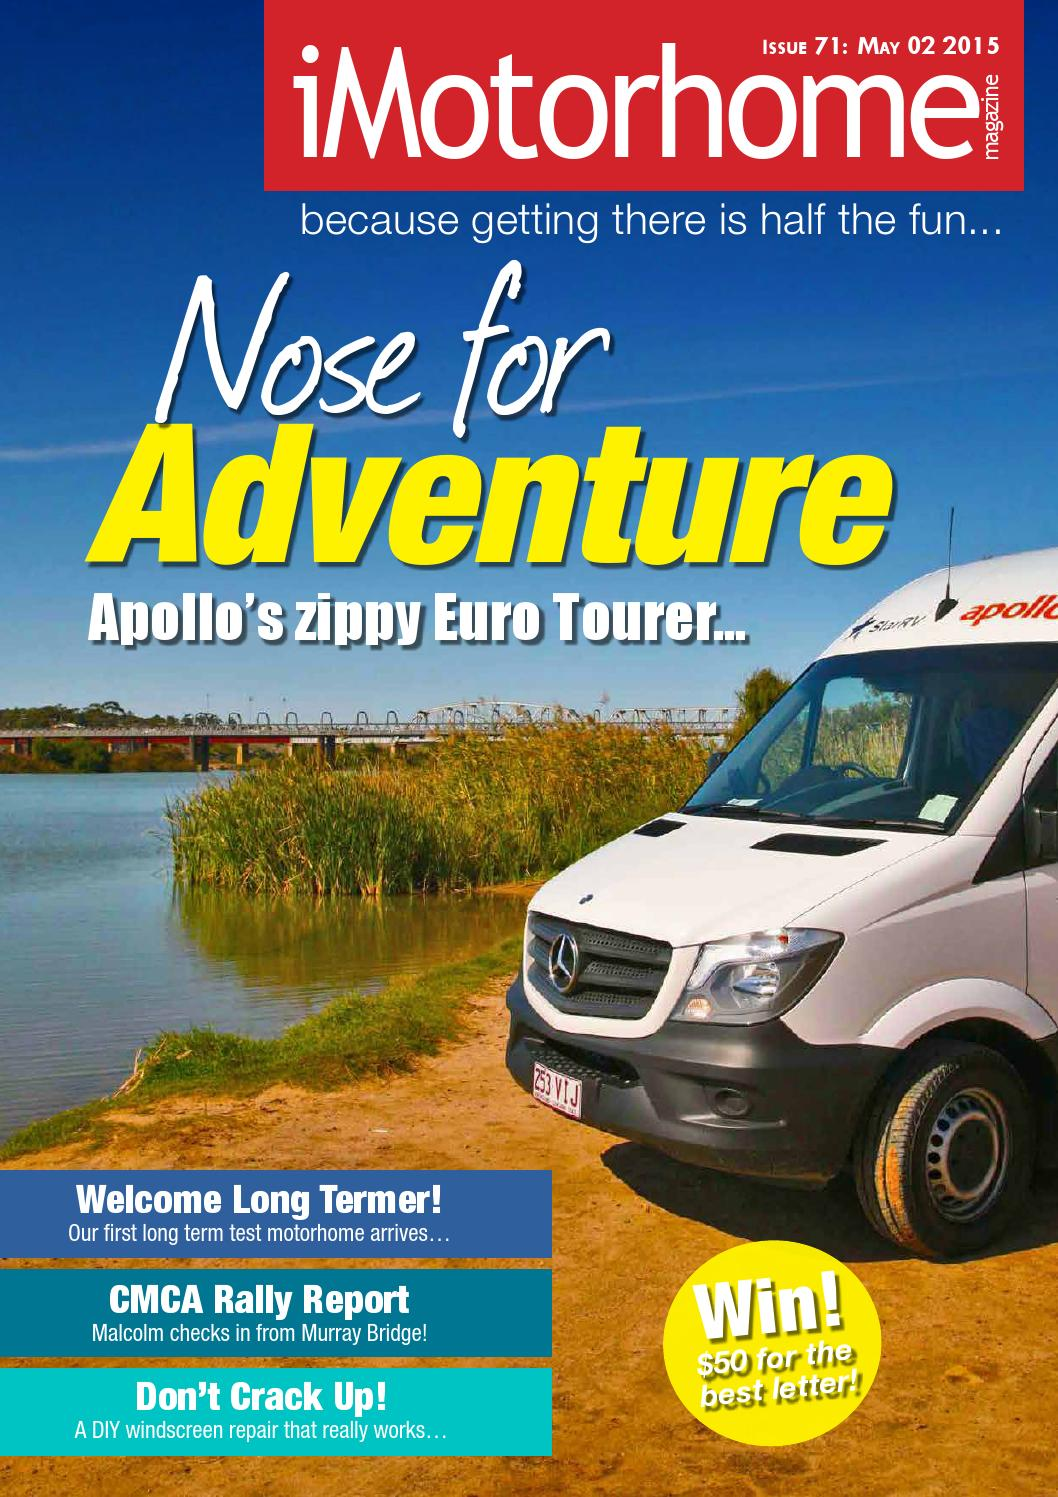 Imotorhome emagazine issue 71 02 may 2015 by imotorhome magazine imotorhome emagazine issue 71 02 may 2015 by imotorhome magazine issuu fandeluxe Image collections